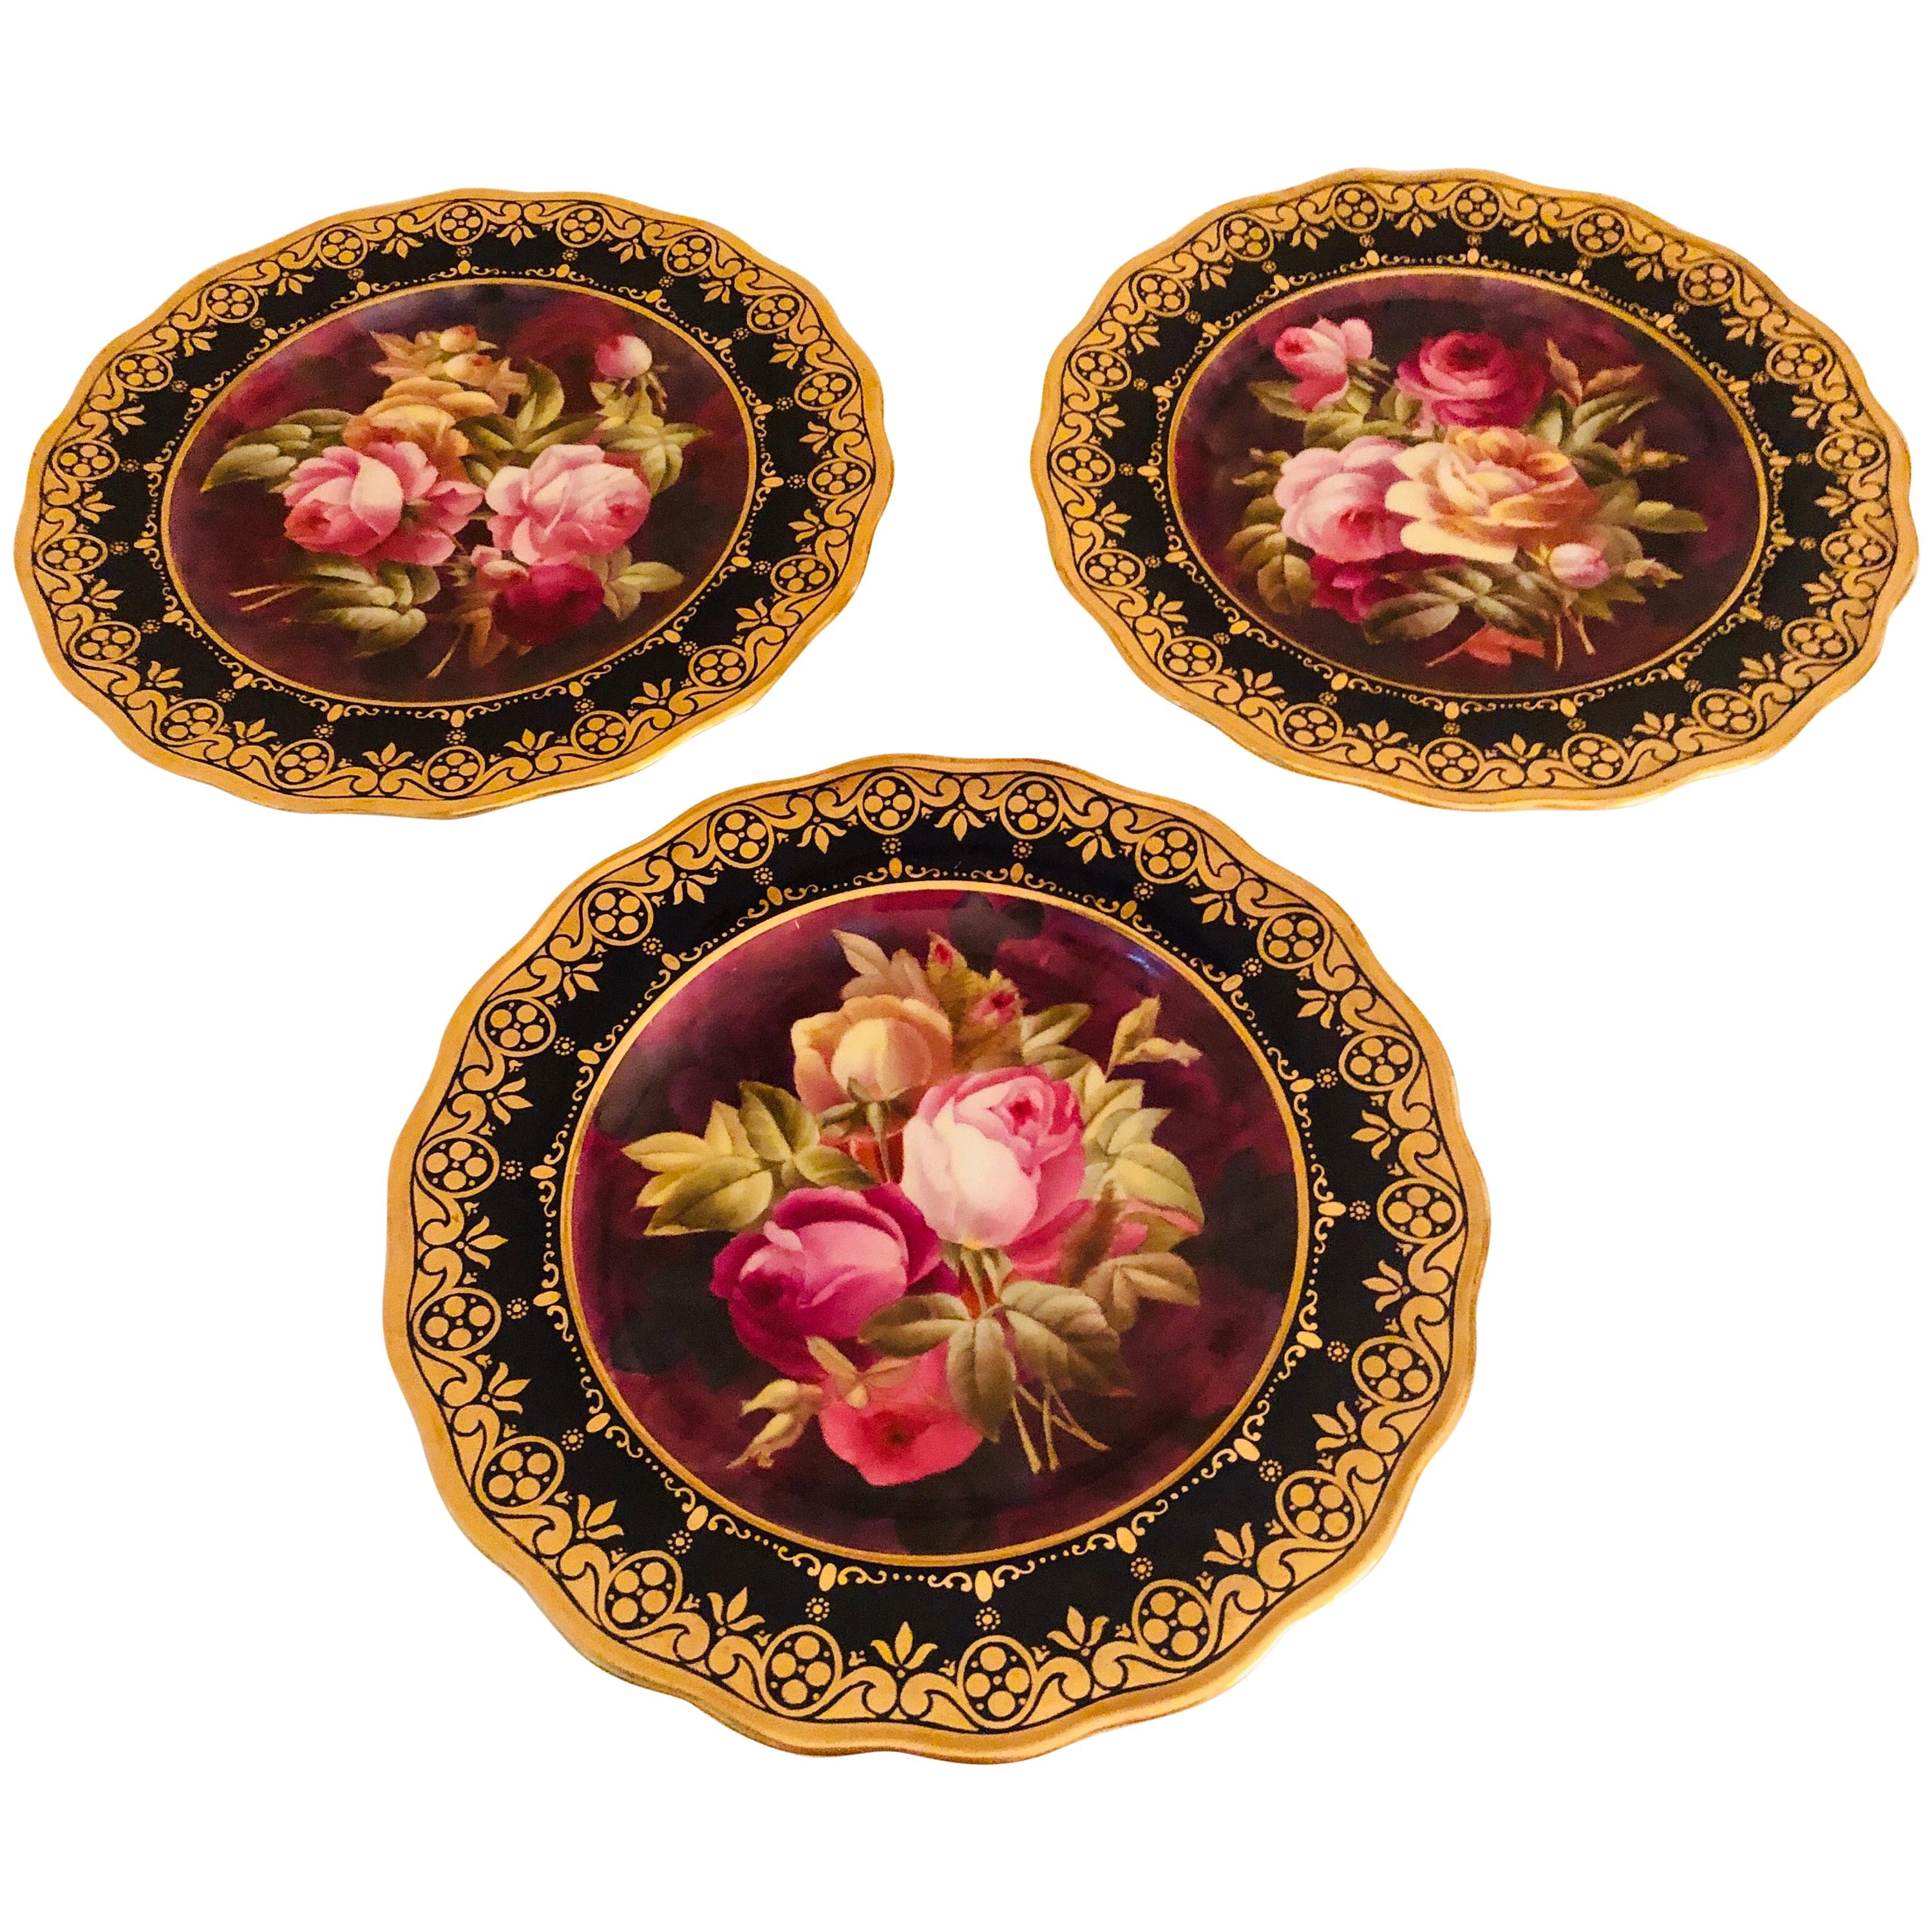 Twelve Exceptional Cobalt Cauldon Plates Each Painted with Different Roses